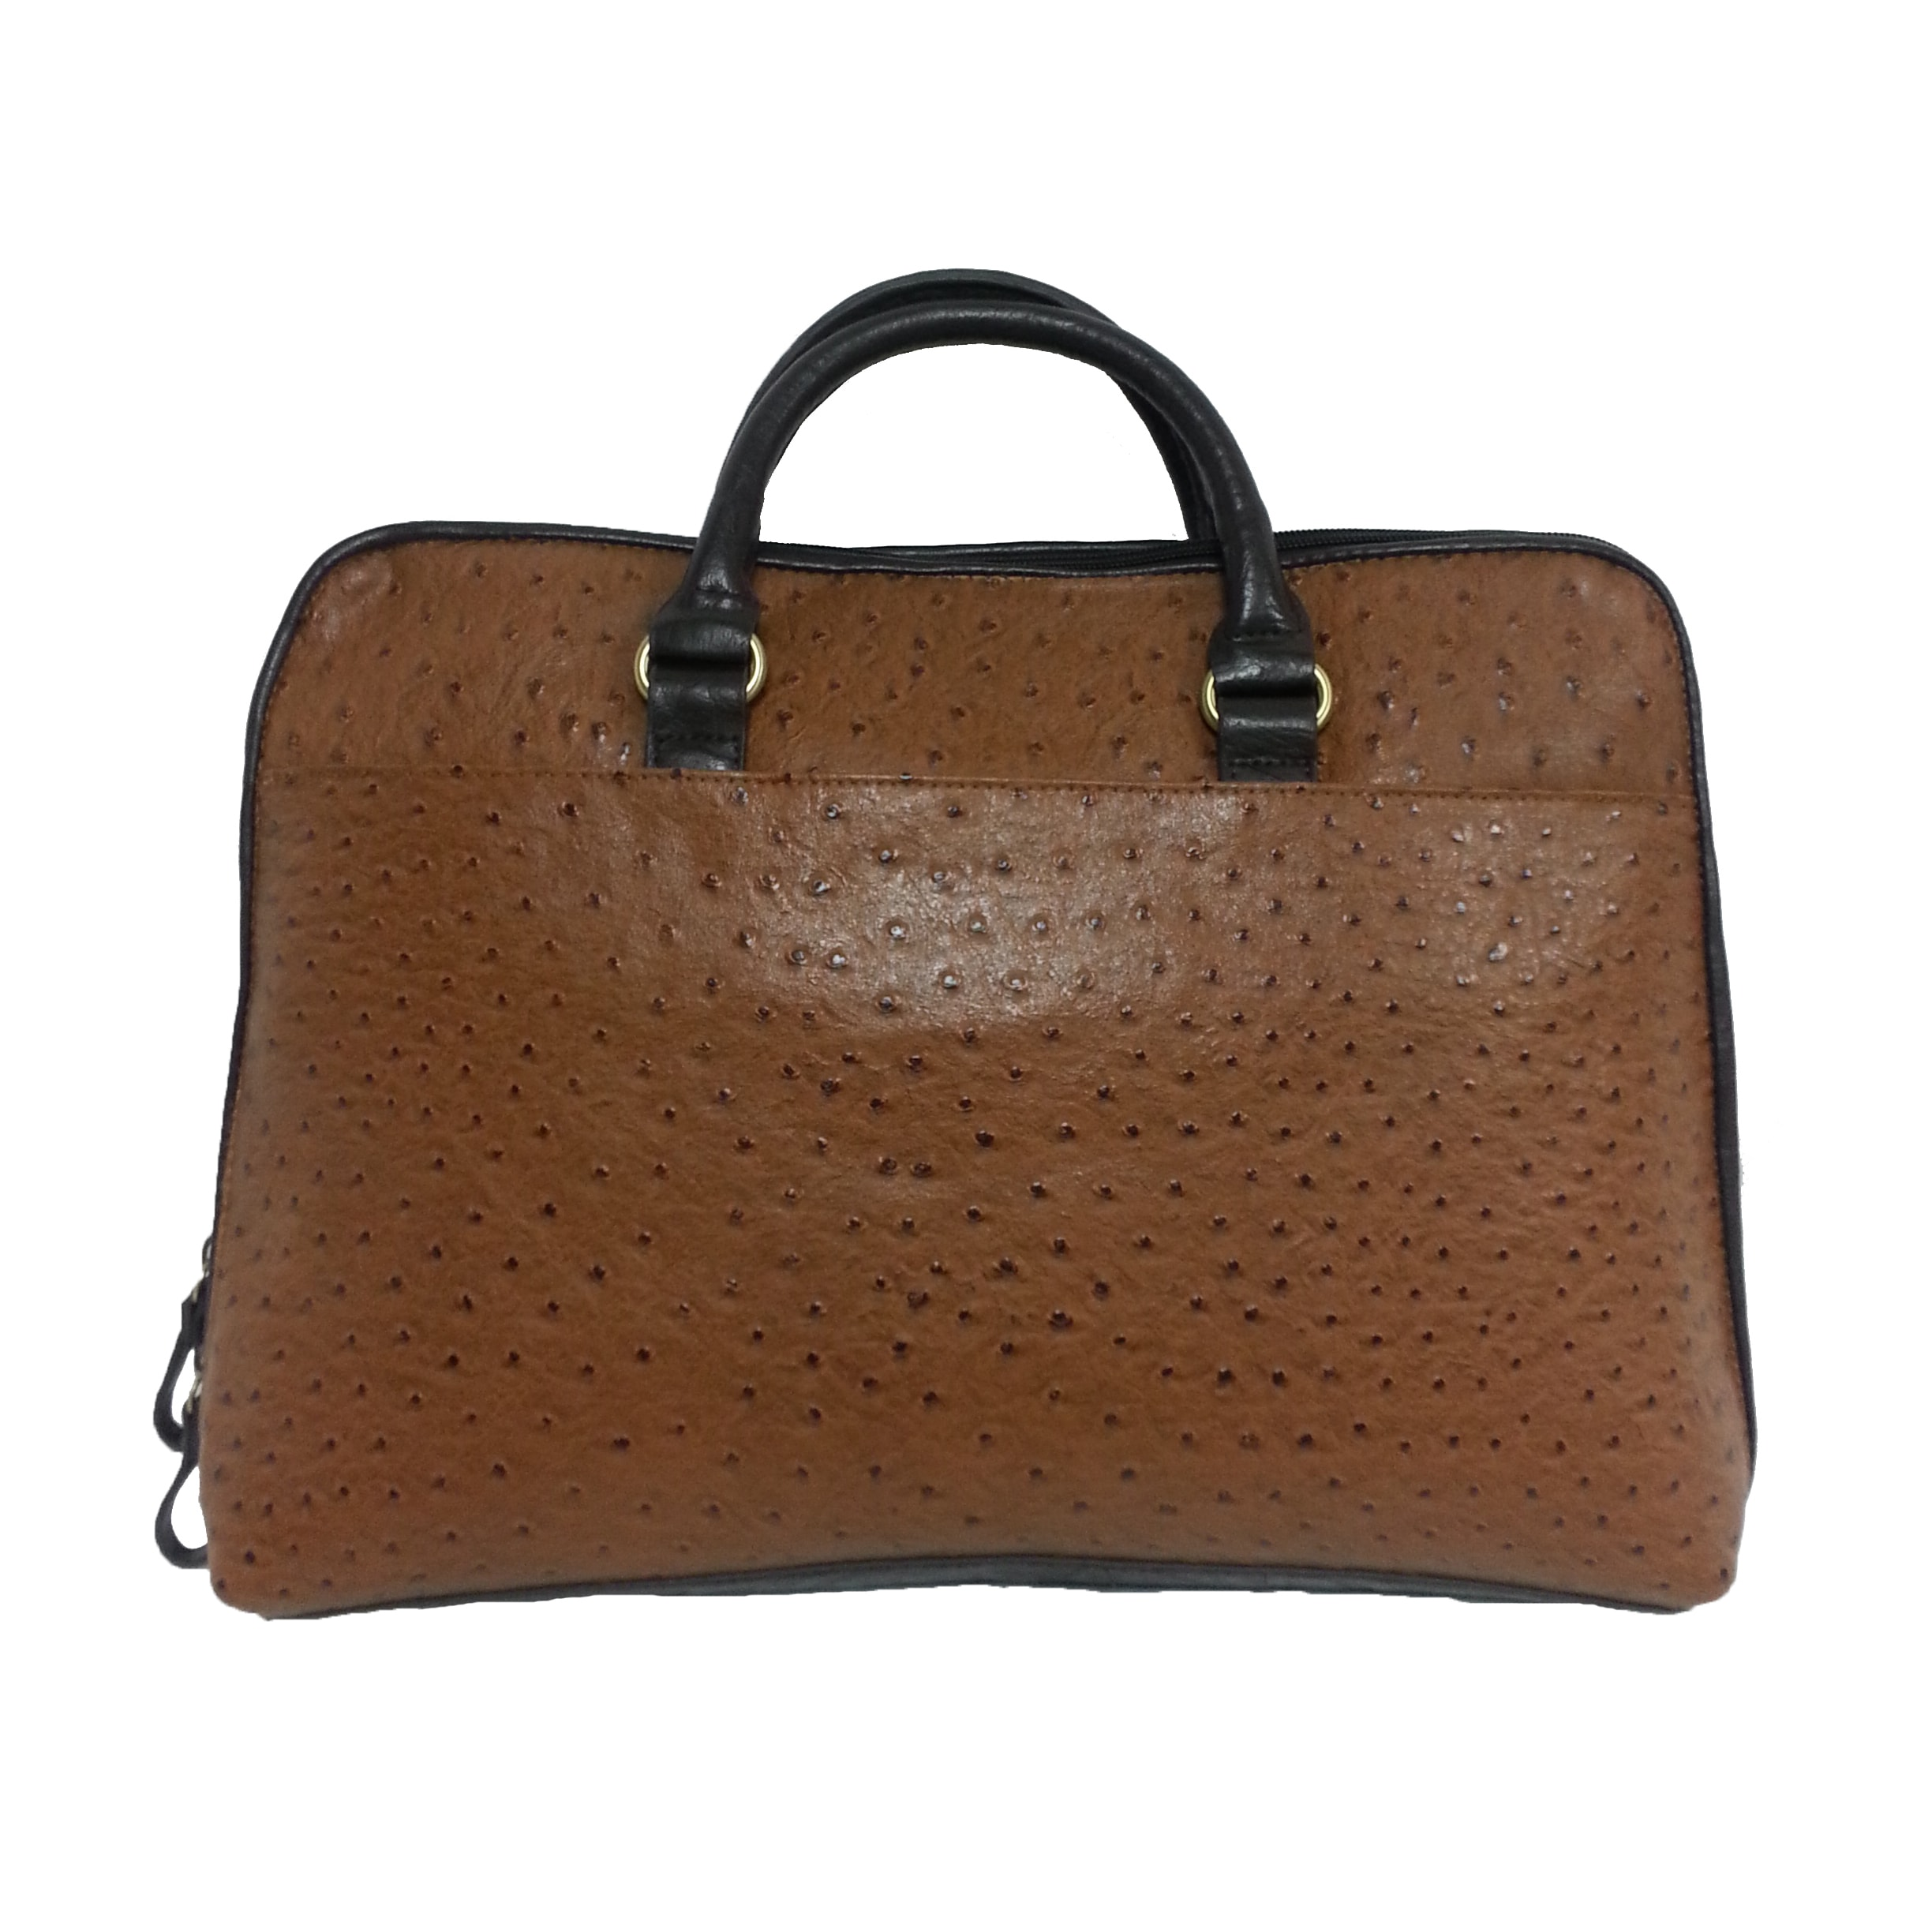 Donna Bella Designs Bueno Handbag Whitney Synthetic Leather Computer Tote On Free Shipping Orders Over 45